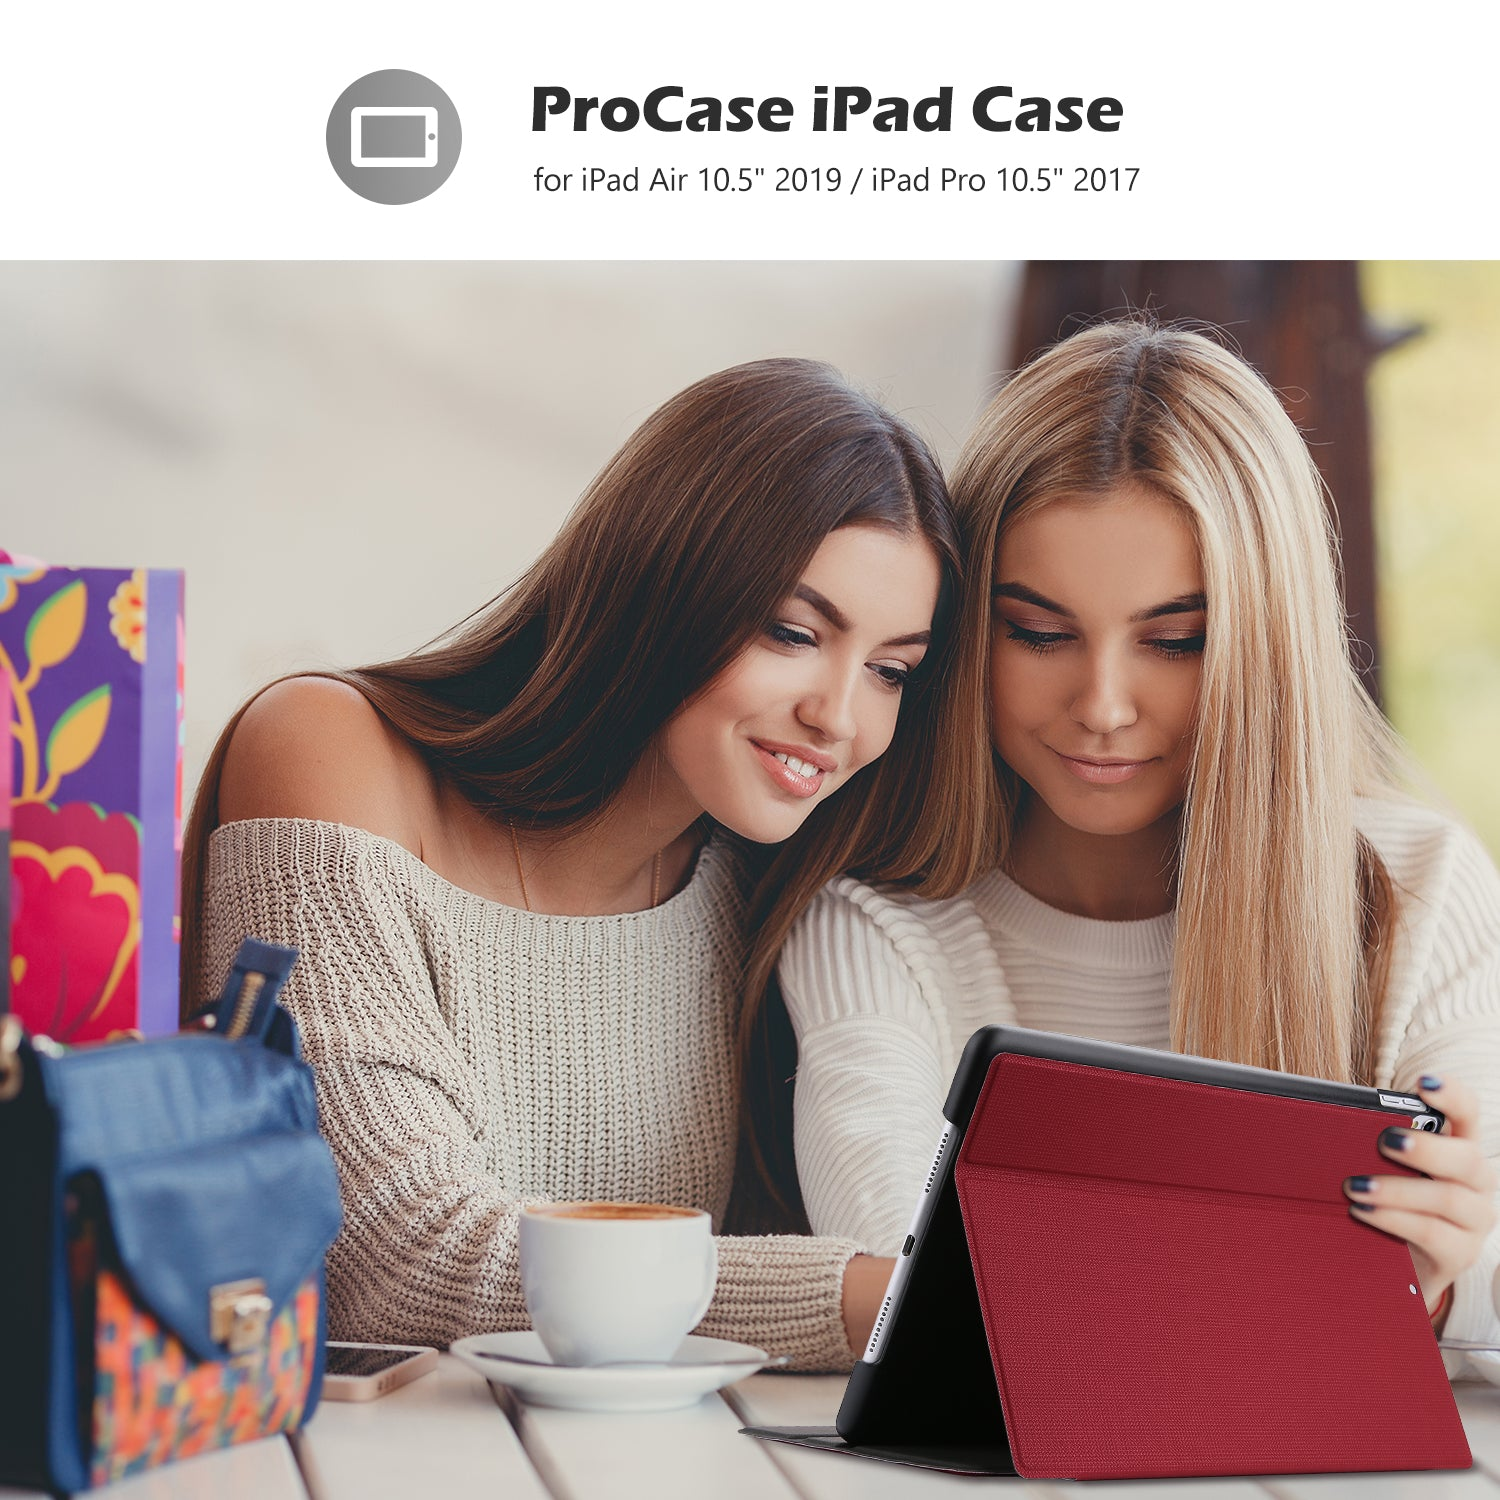 iPad Air 3 10.5 2019 / iPad Pro 10.5 2017 Slim Case